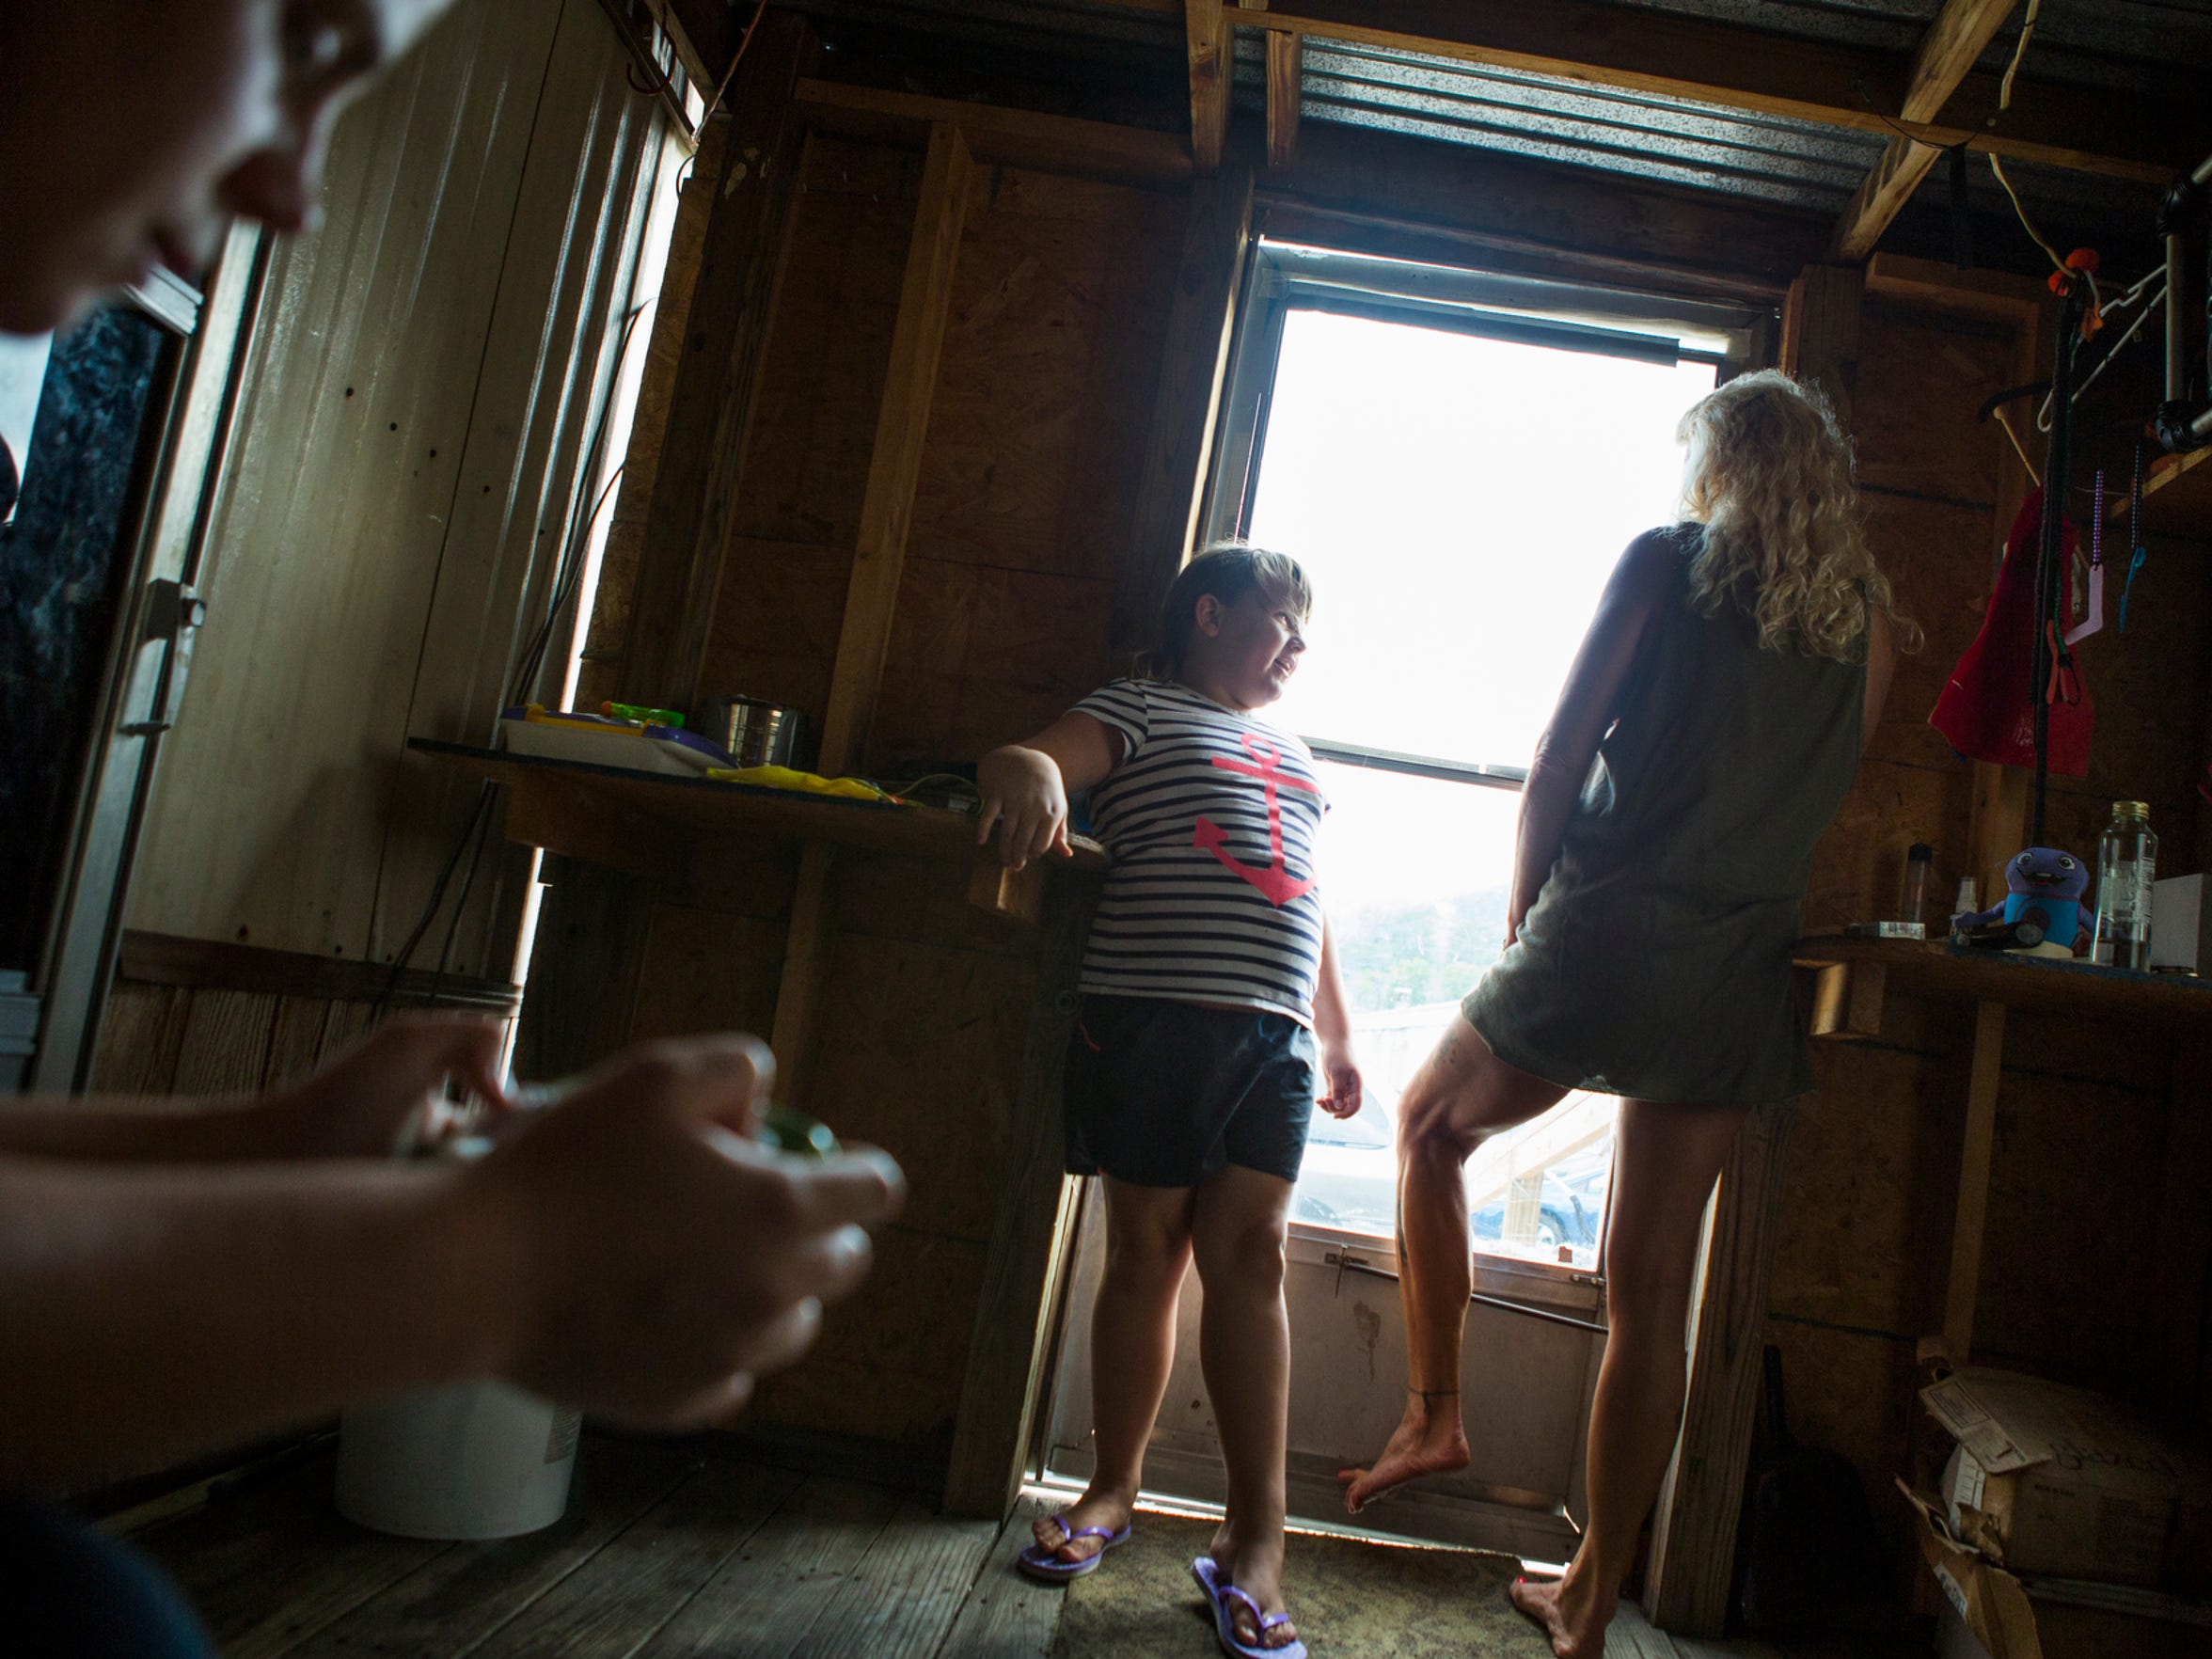 Haley Johnson, 7, and her mom Lisa Smith stand at the